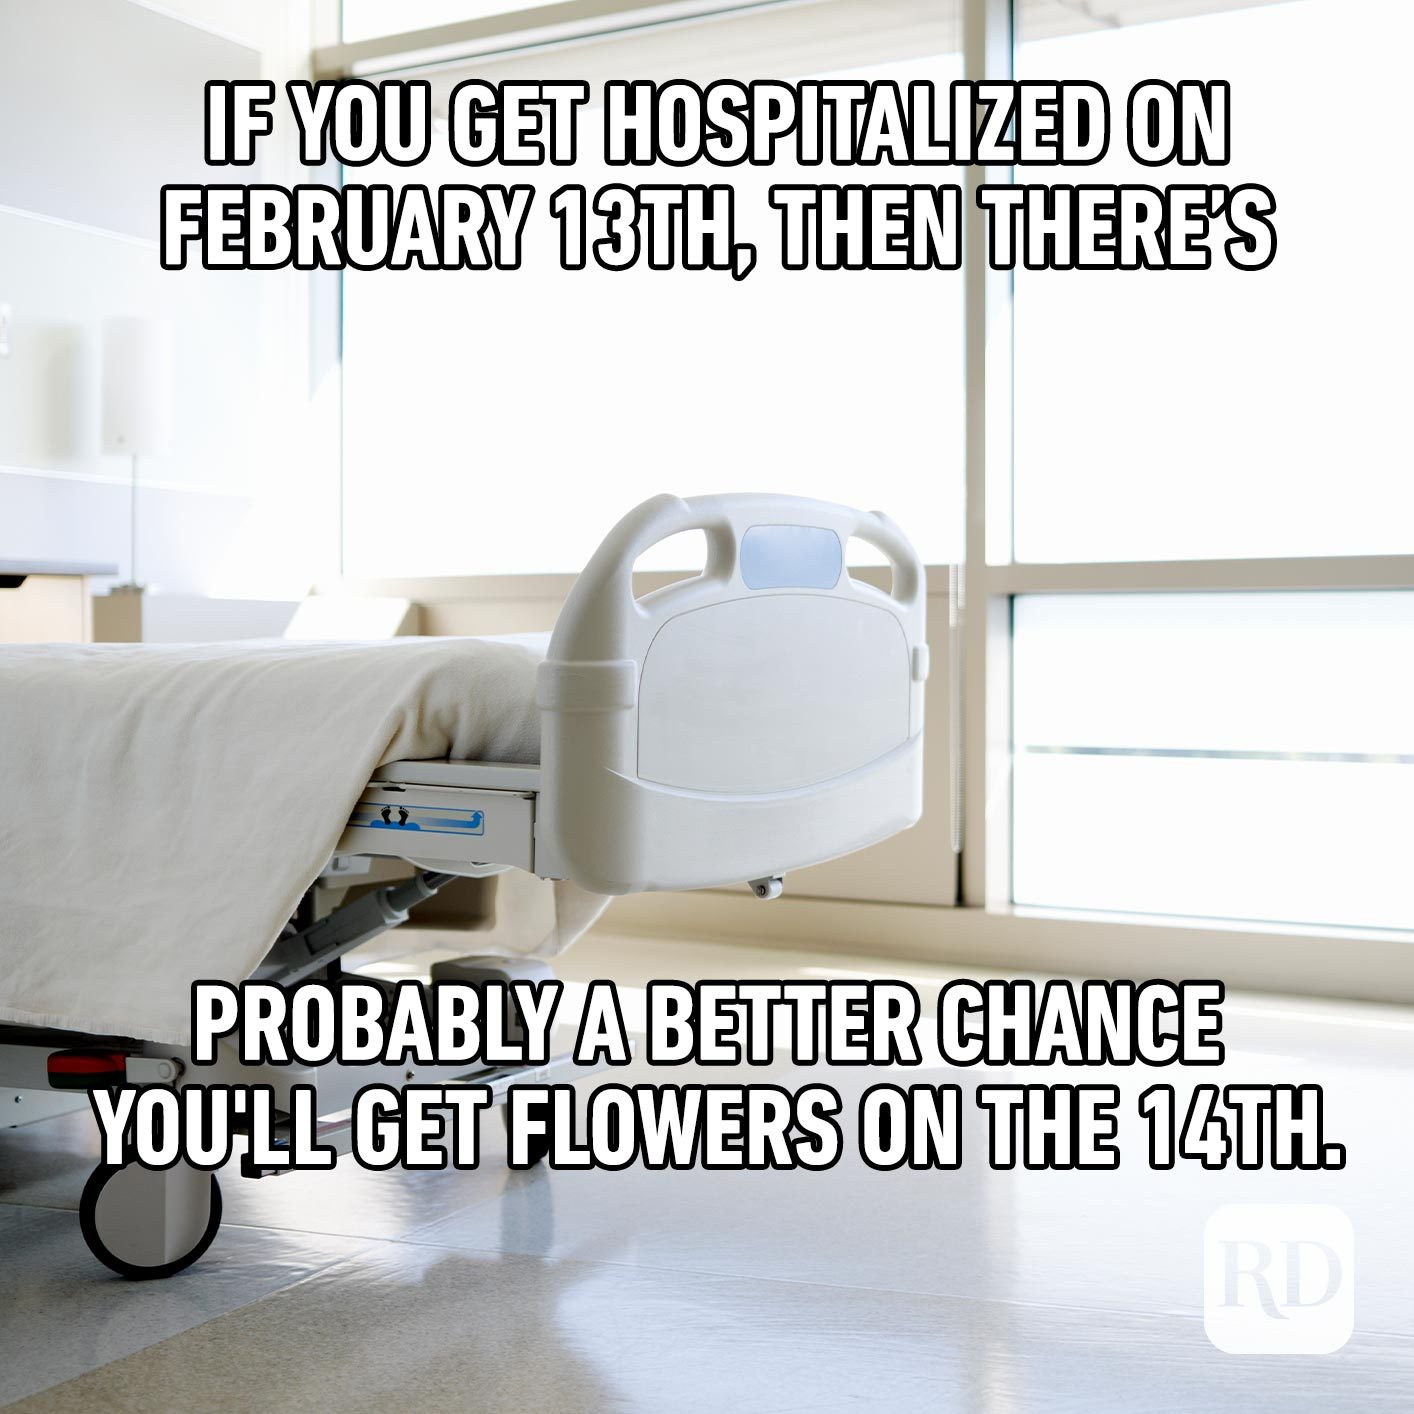 Hospital bed. Meme text: If you get hospitalized on February 13th, then there's probably a better chance you'll get flowers on the 14th.